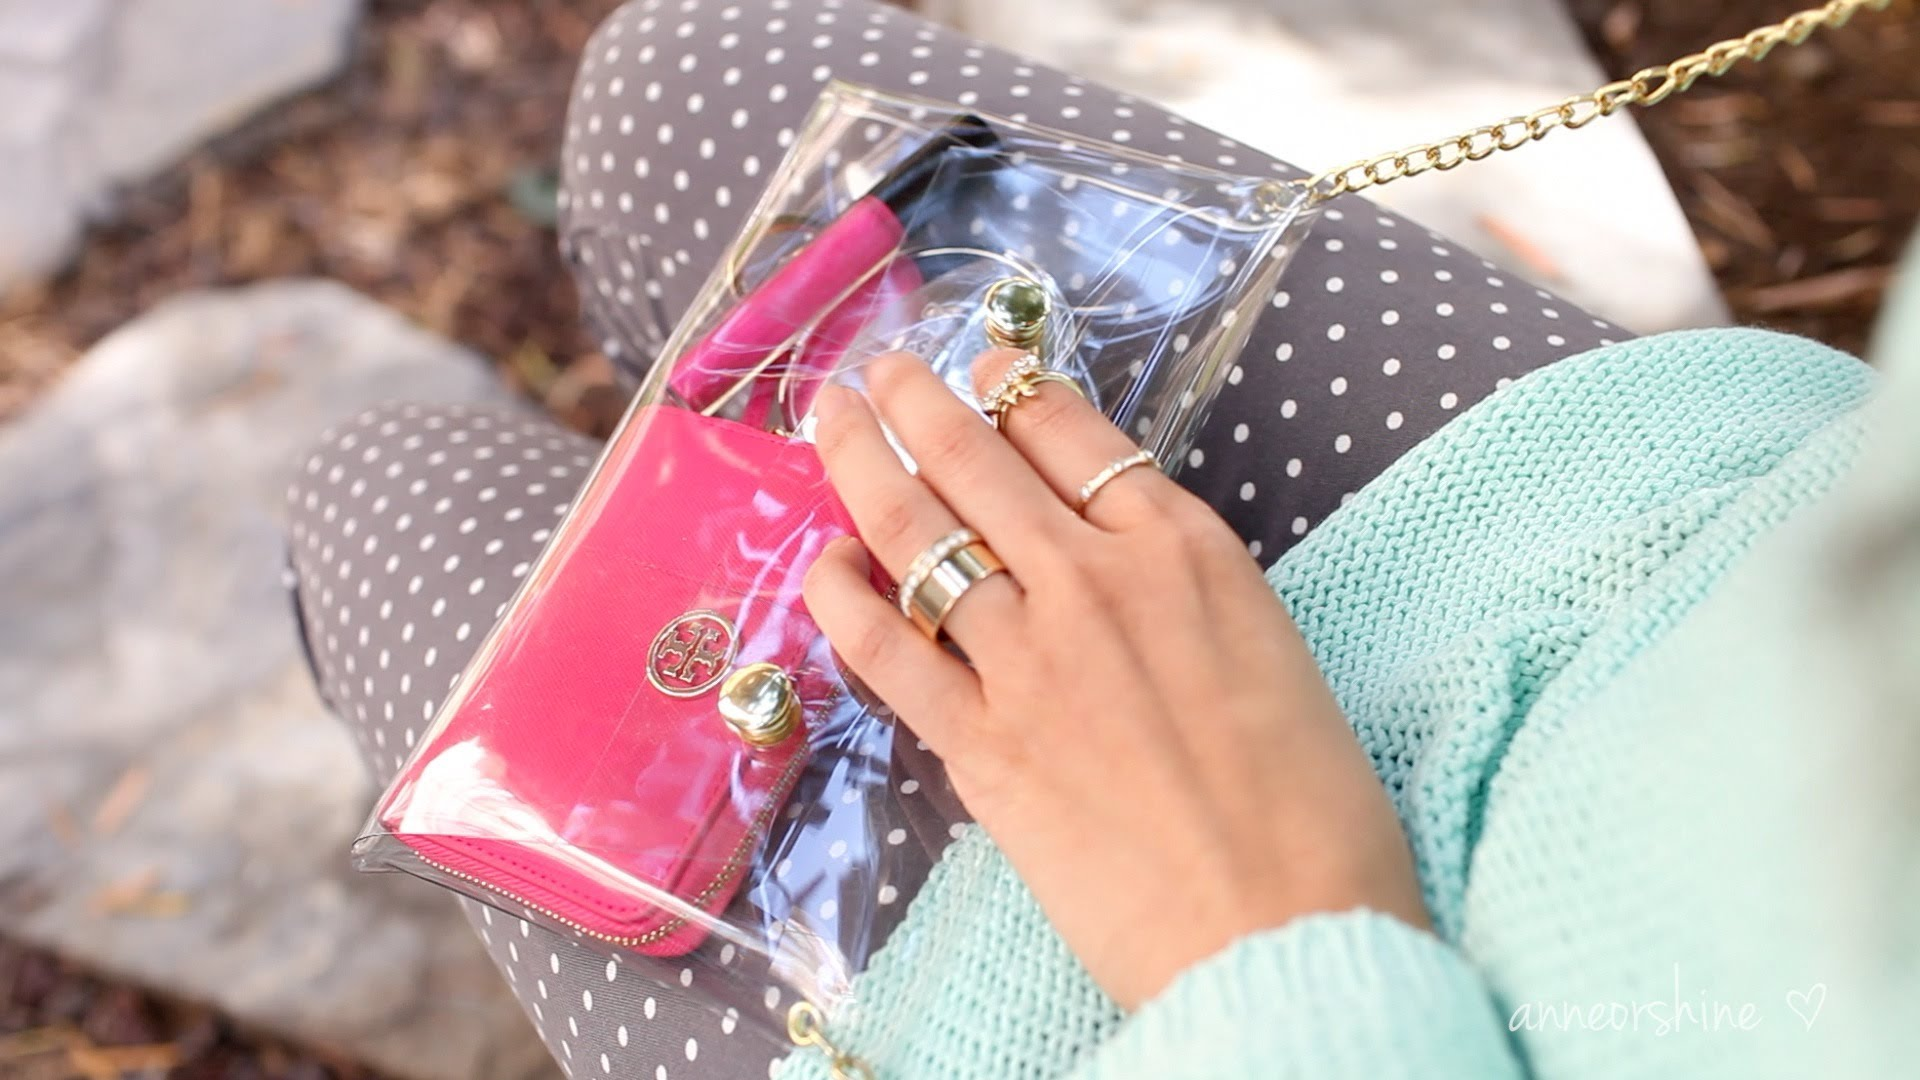 Diy Extras: How to Make a Adorable Apparent Crossbody Clutch | ANNEORSHINE